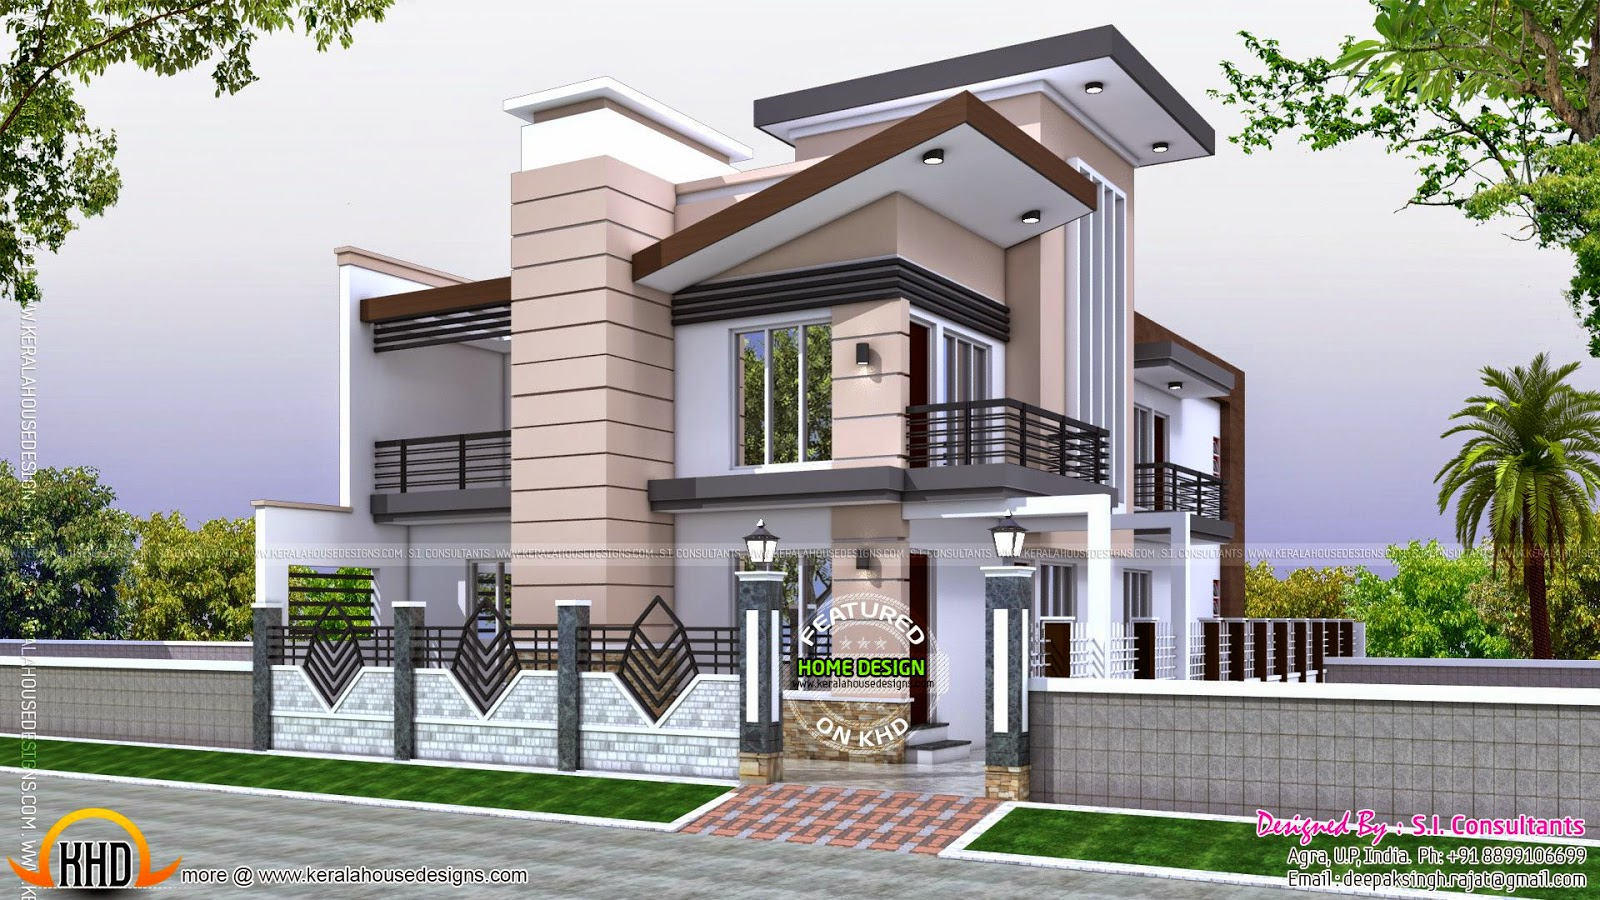 Indian home modern style kerala home design and floor plans Small indian home designs photos